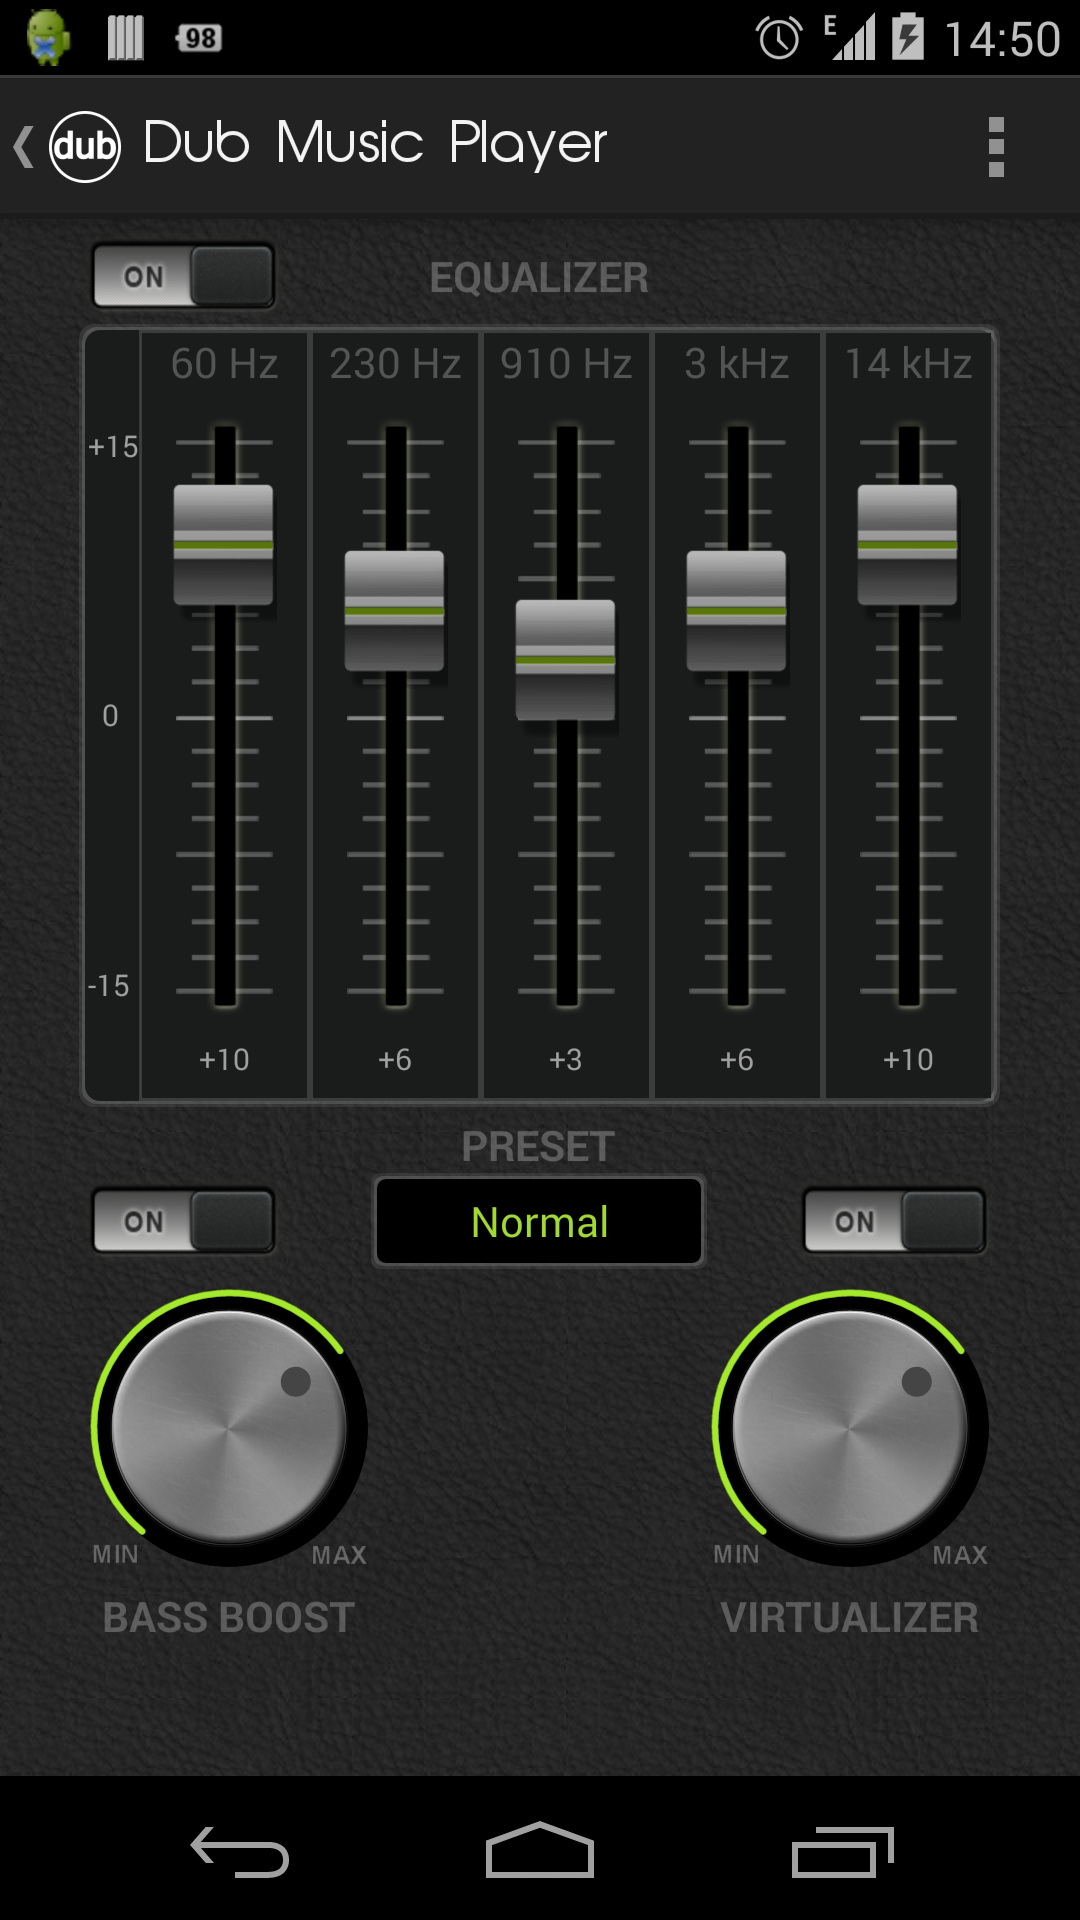 Dub Music Player + Equalizer: Amazon.co.uk: Appstore for Android